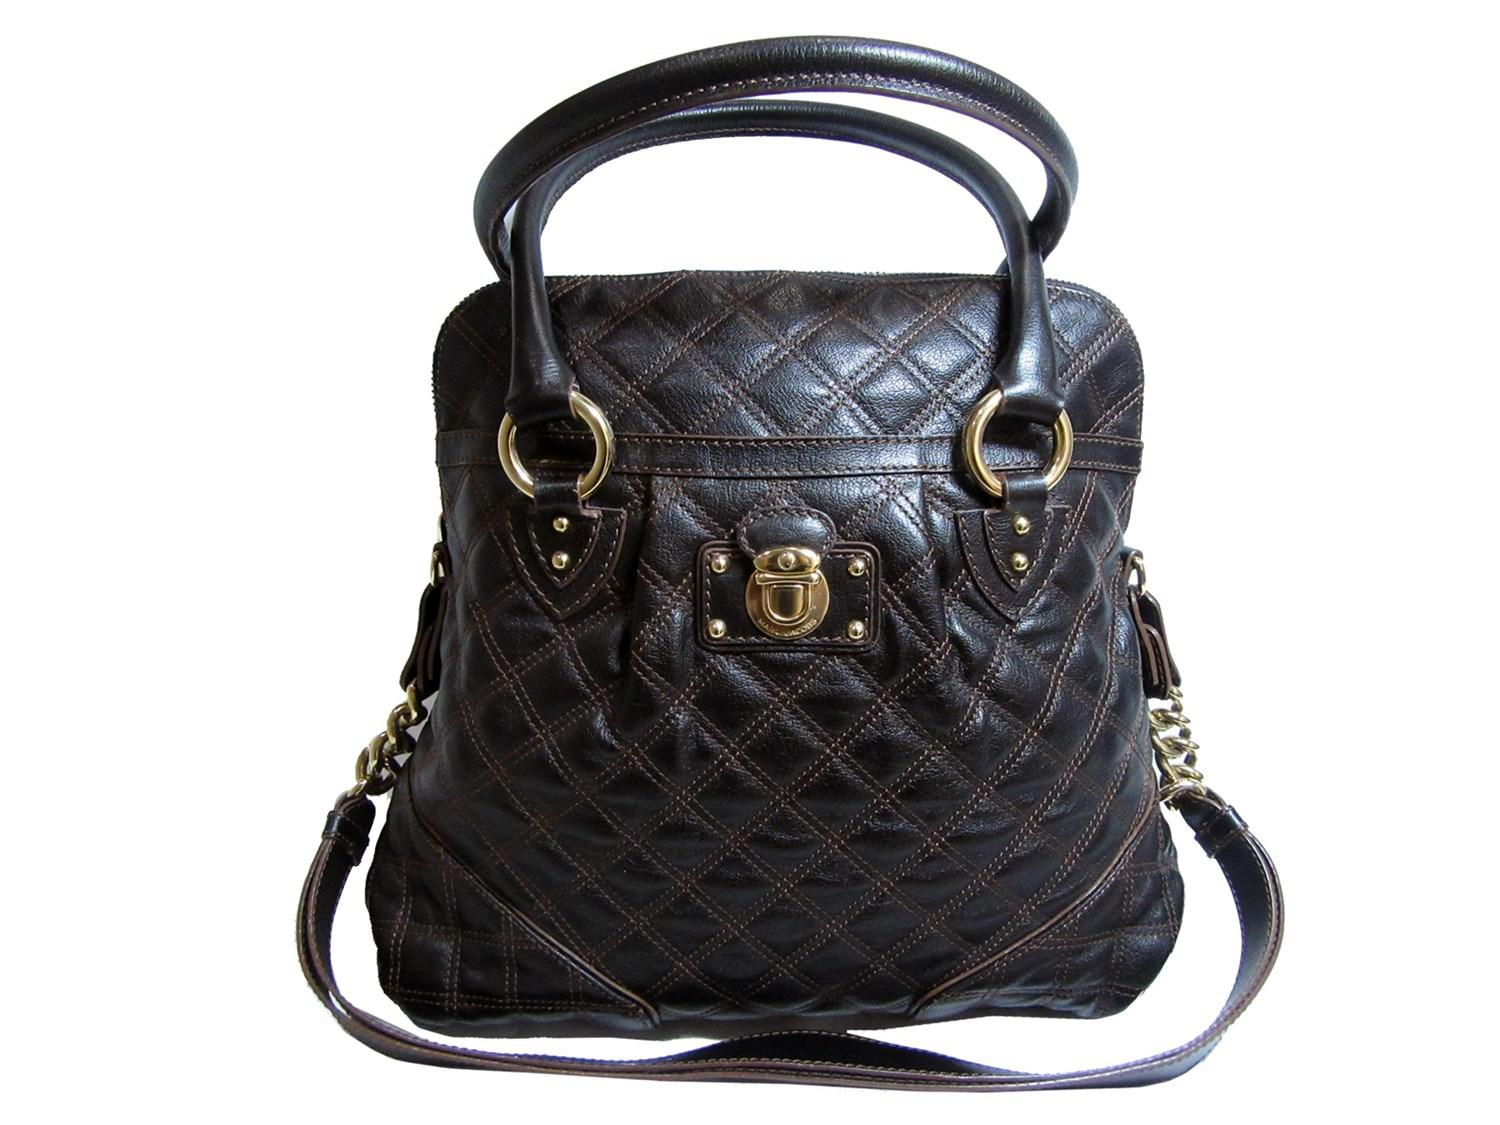 e5c820c3b6b7 Lyst - Marc Jacobs Auth Quilted Shoulder Handbag Brown Leather Used ...